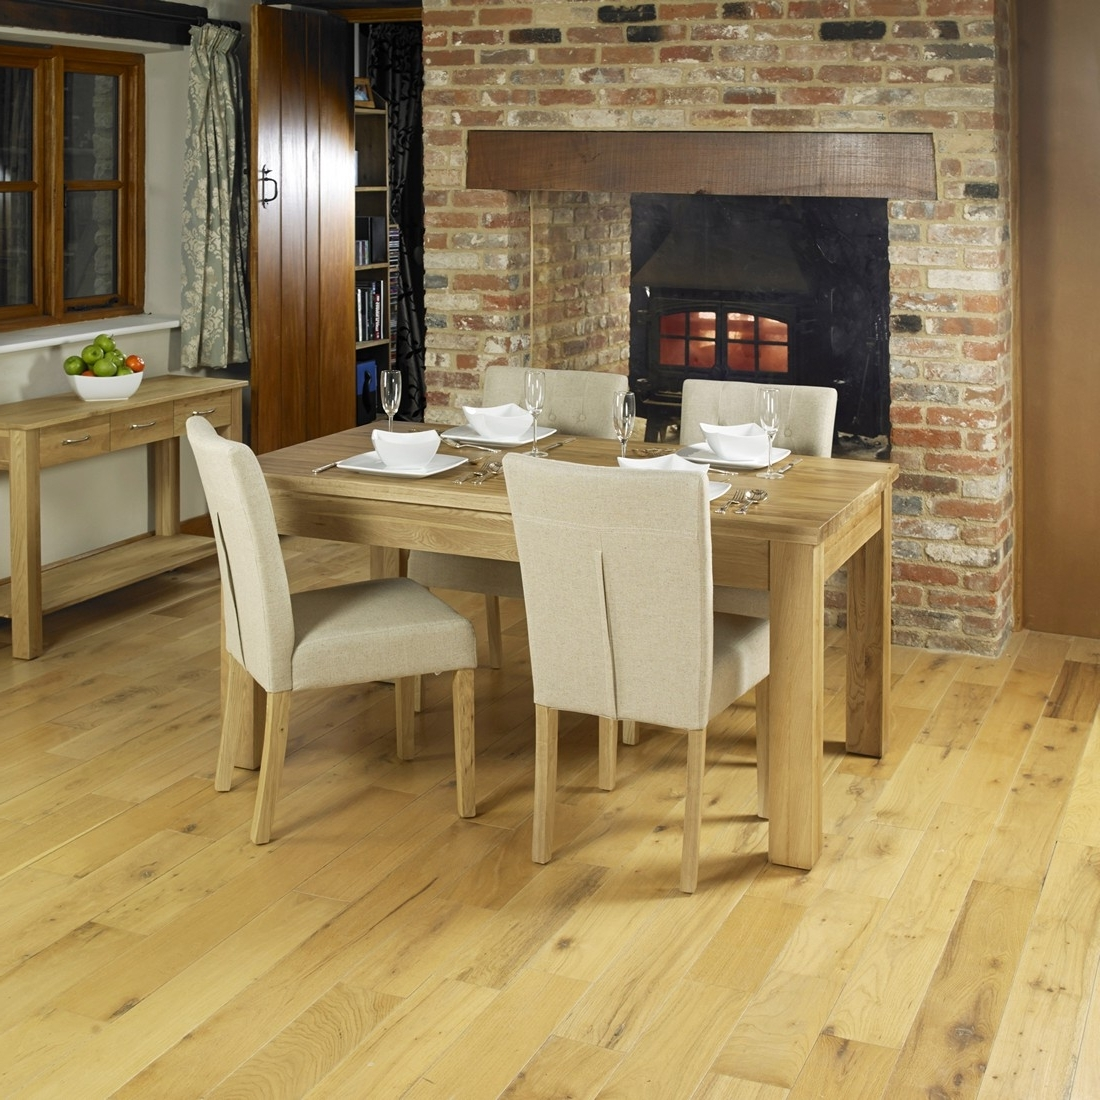 Oak Extending Dining Tables And 8 Chairs Regarding Most Up To Date Bonsoni Extending Oak Dining Table (Seats 4  (View 23 of 25)